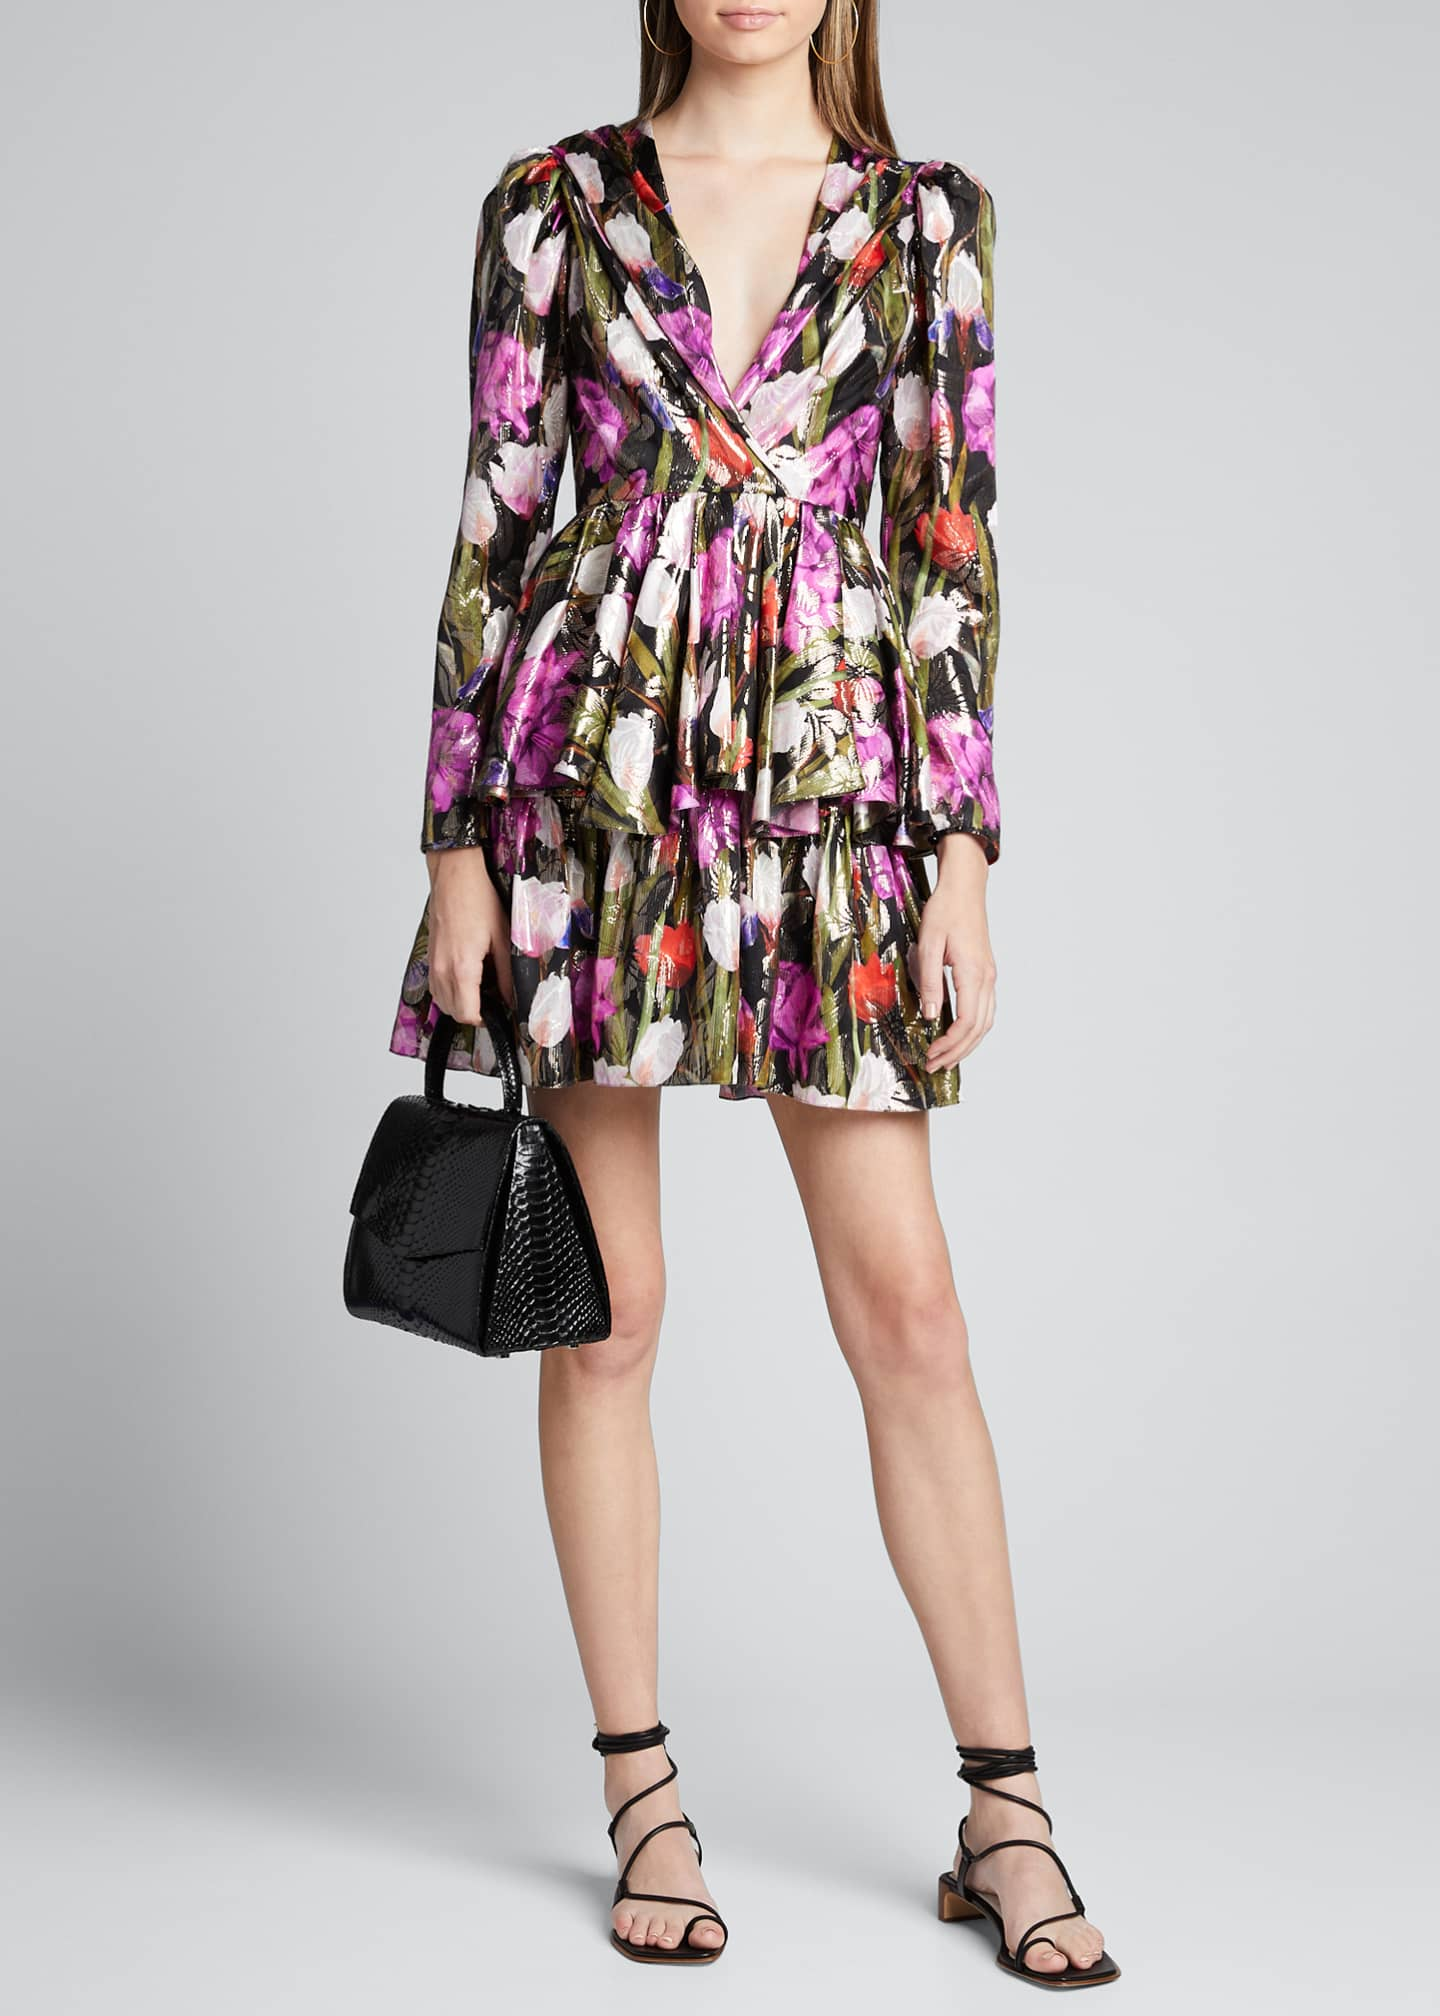 Borgo de Nor Amelia Metallic Floral Jacquard Dress